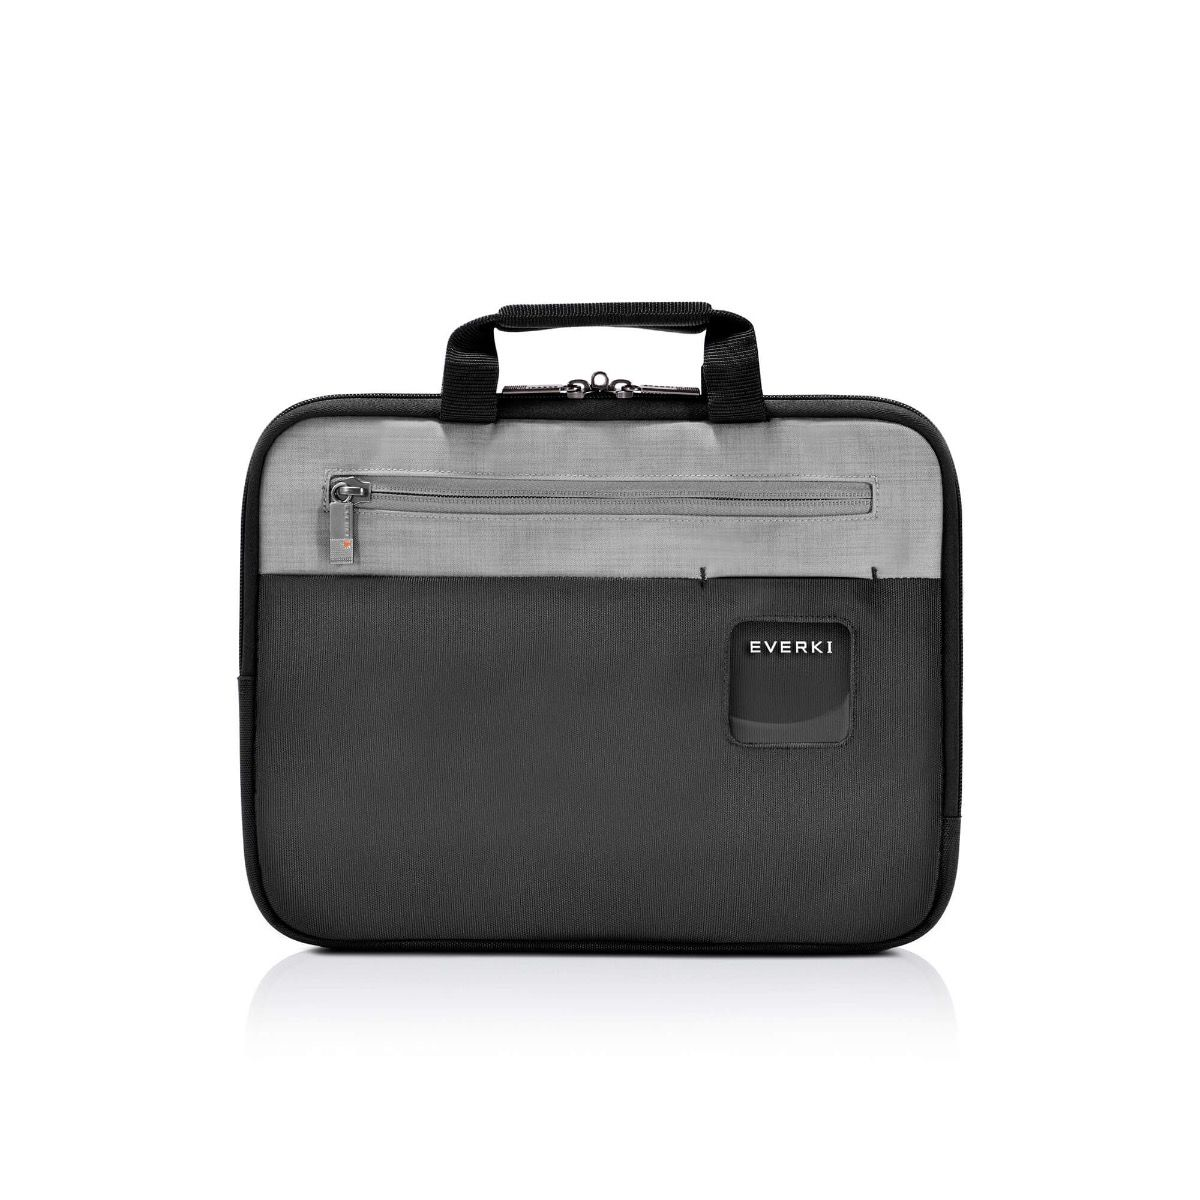 EVERKI ContemPRO 11 Inch Black Laptop Sleeve